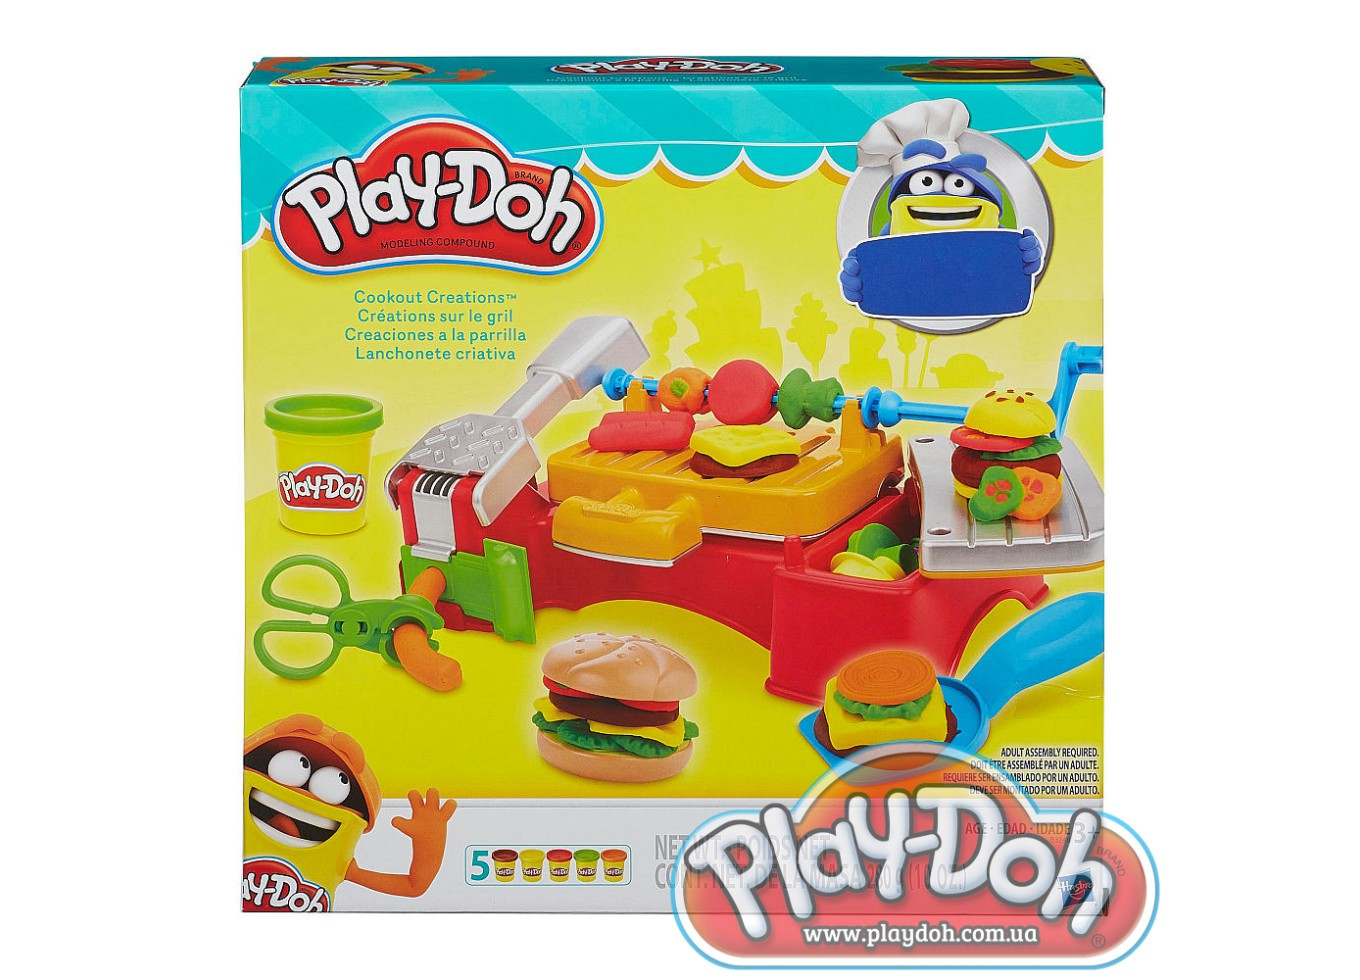 spot play doh cookout creation - 1000×1000